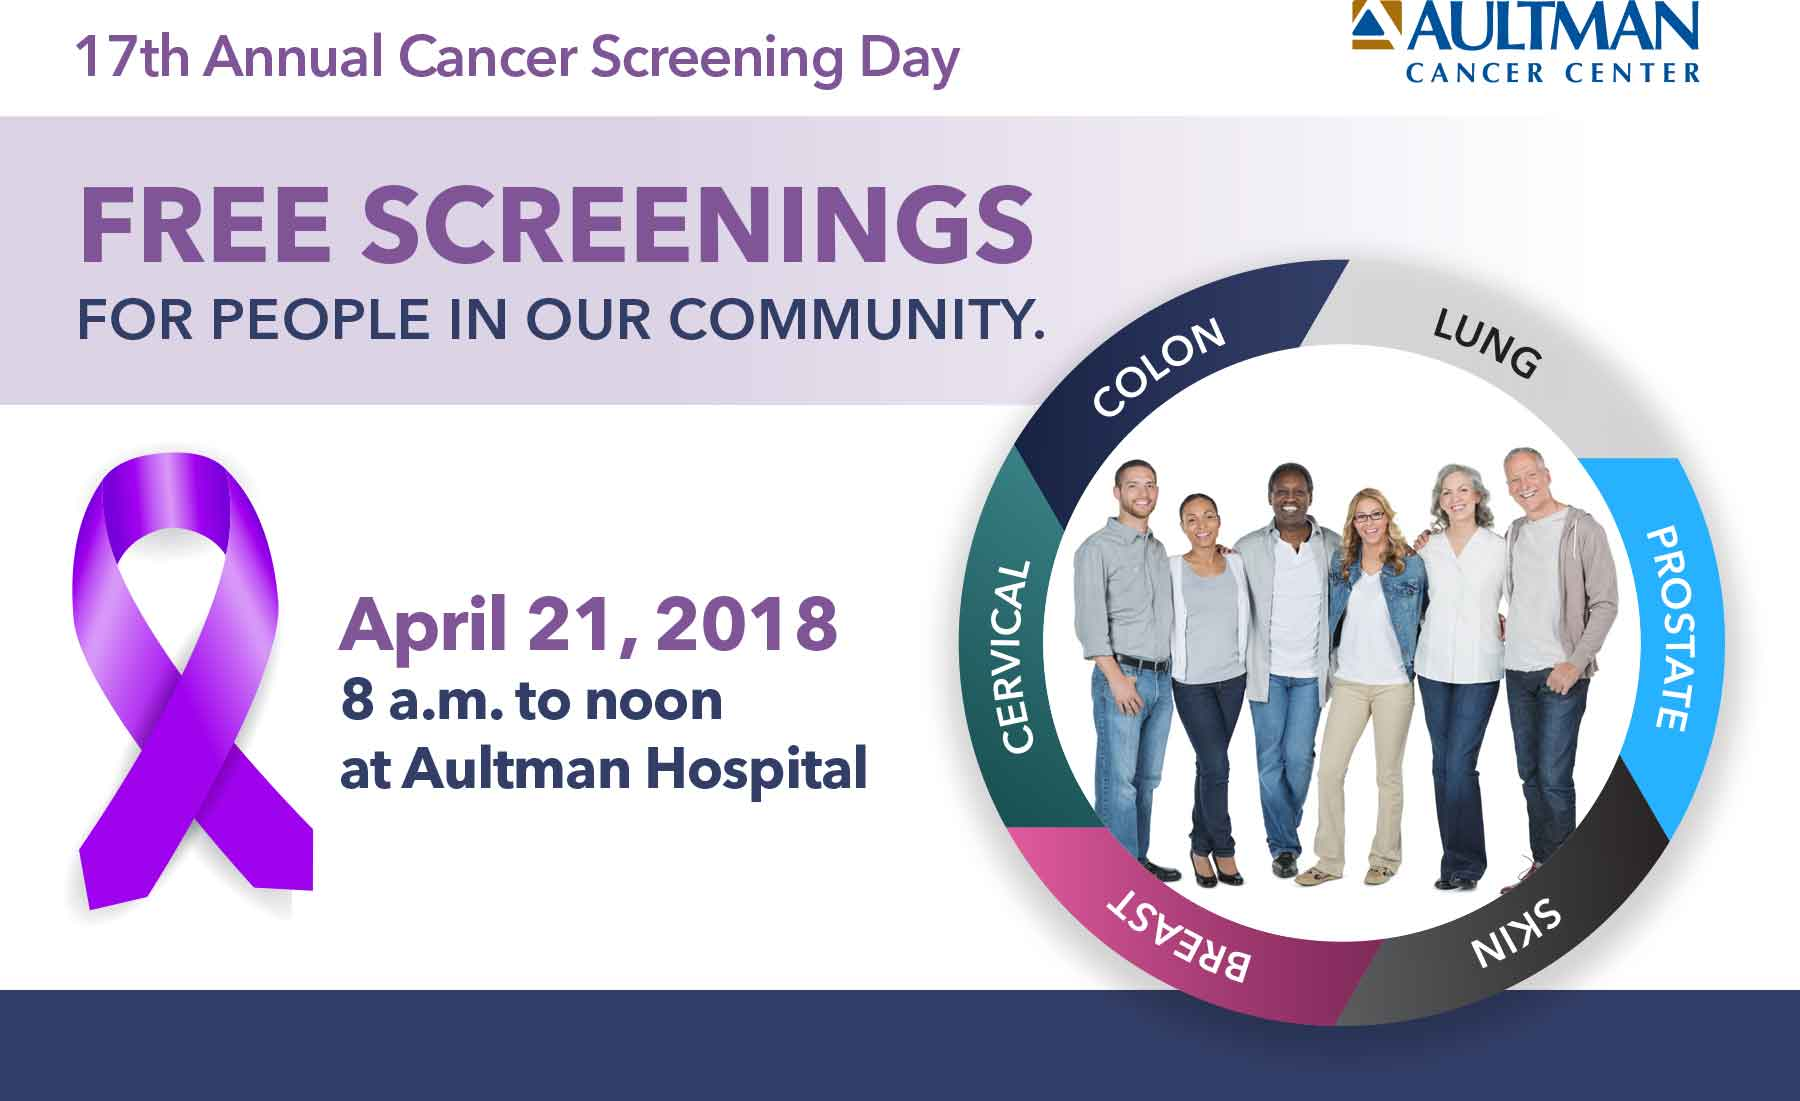 Aultman Cancer Center Offers Free Screenings Aultman